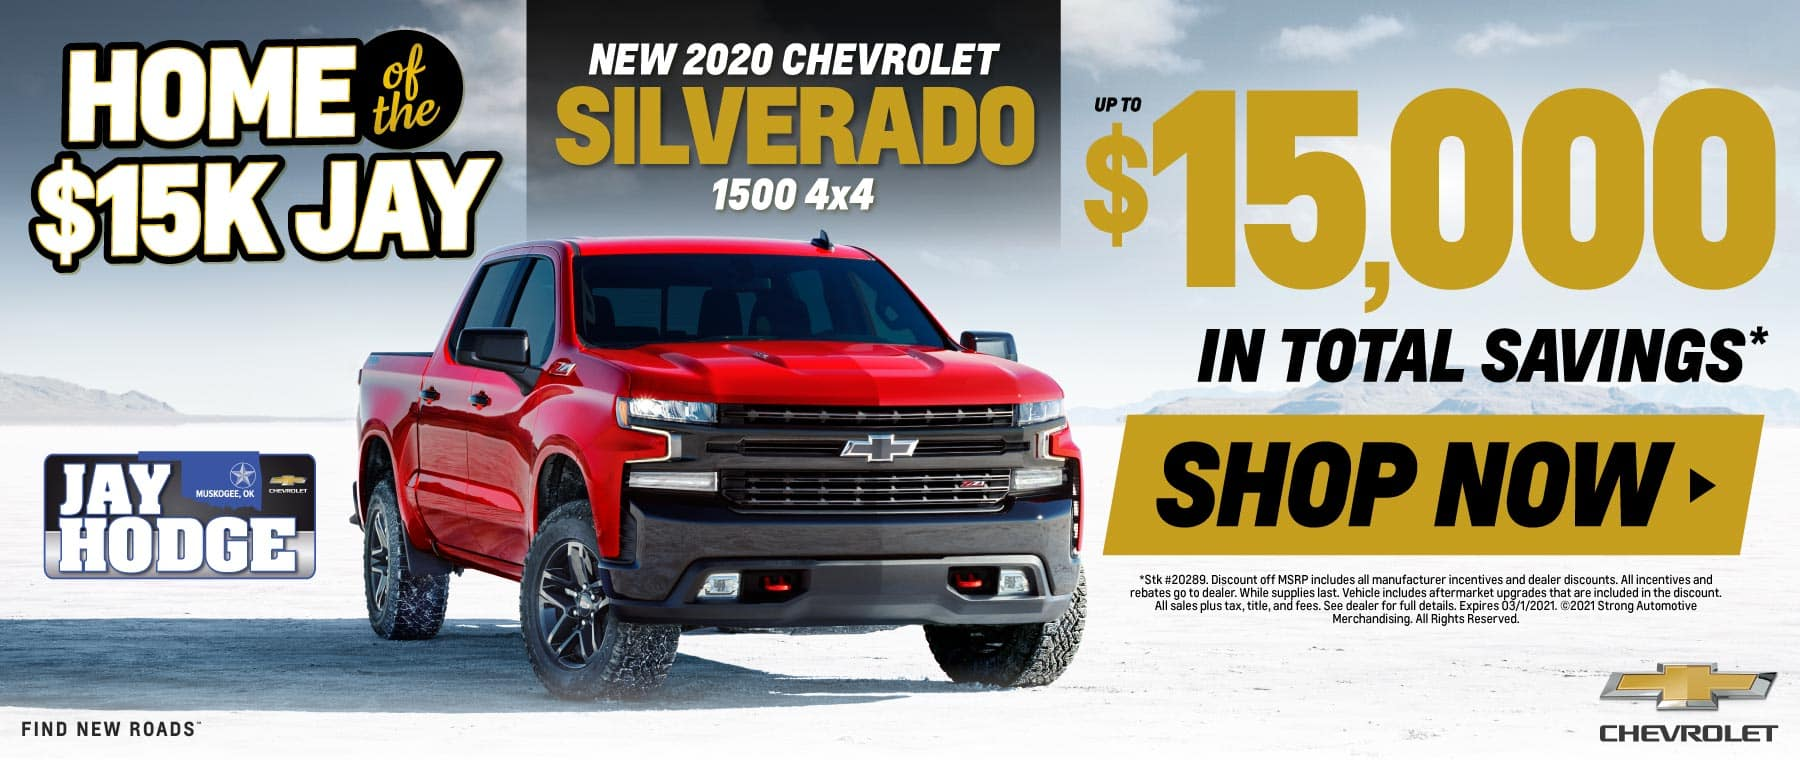 New 2020 Chevrolet Silverado - Up to $15,000 in total savings - Shop Now